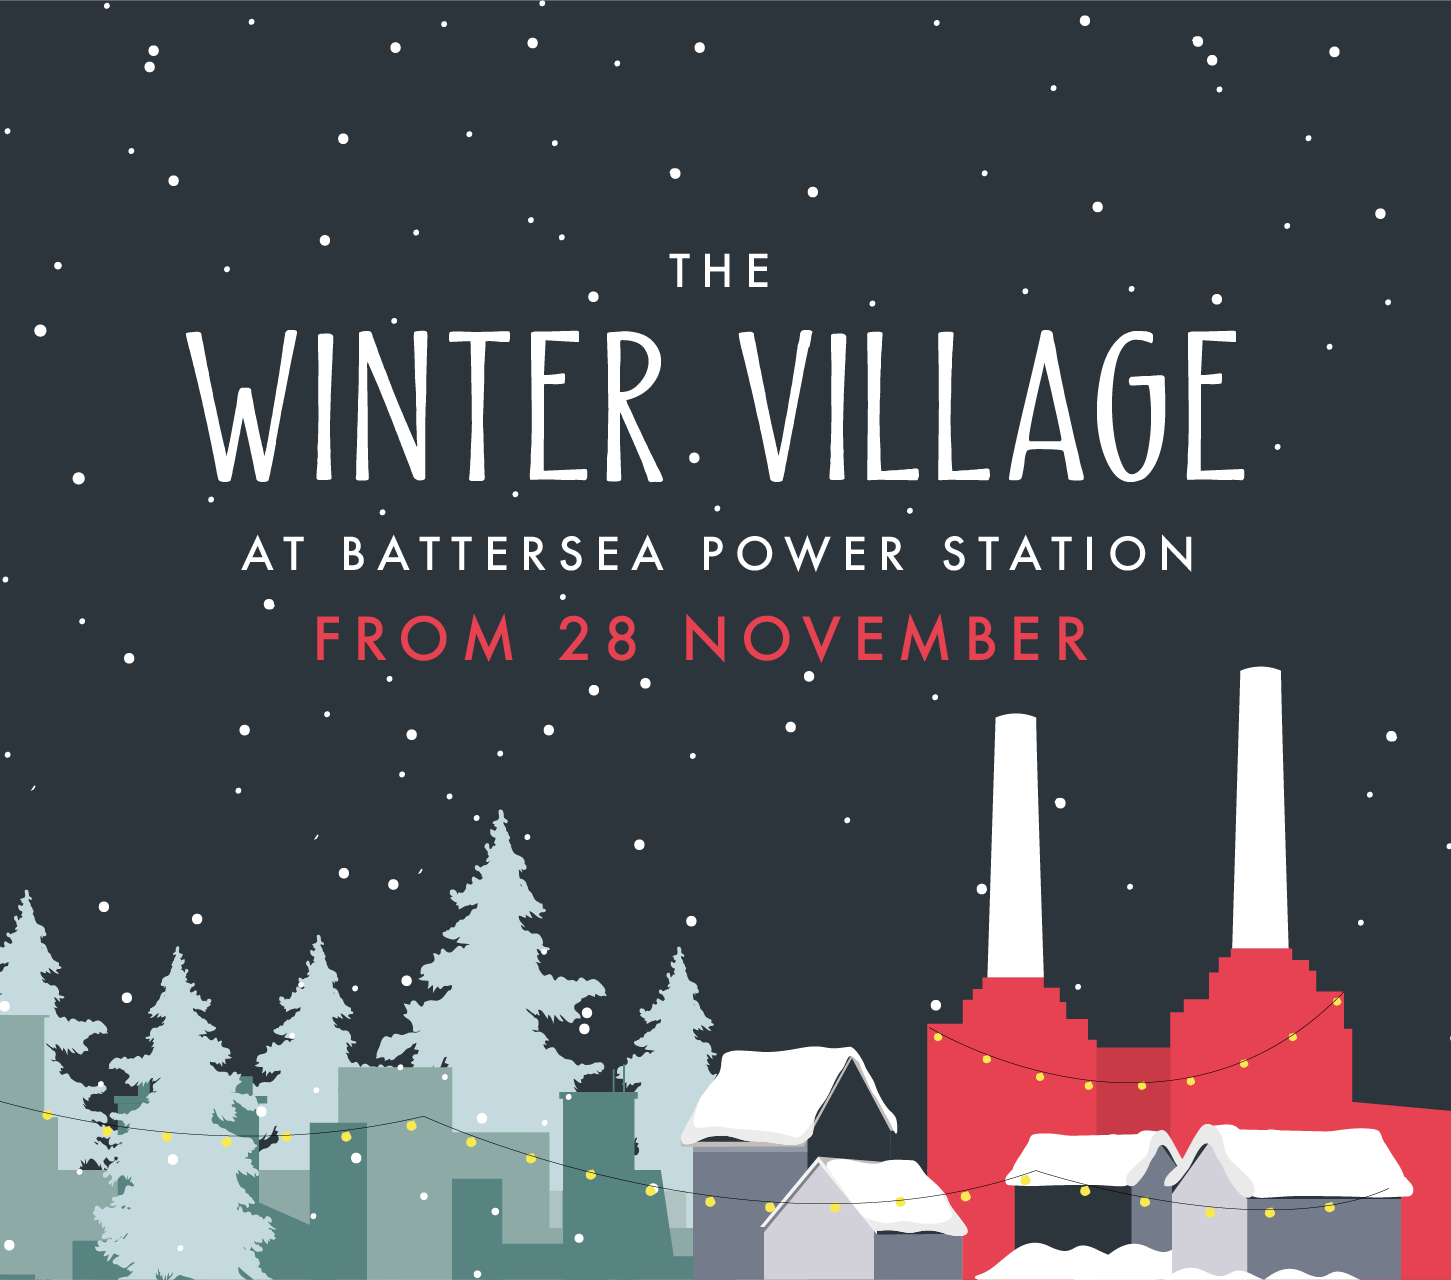 The Winter Village at Battersea Power Station